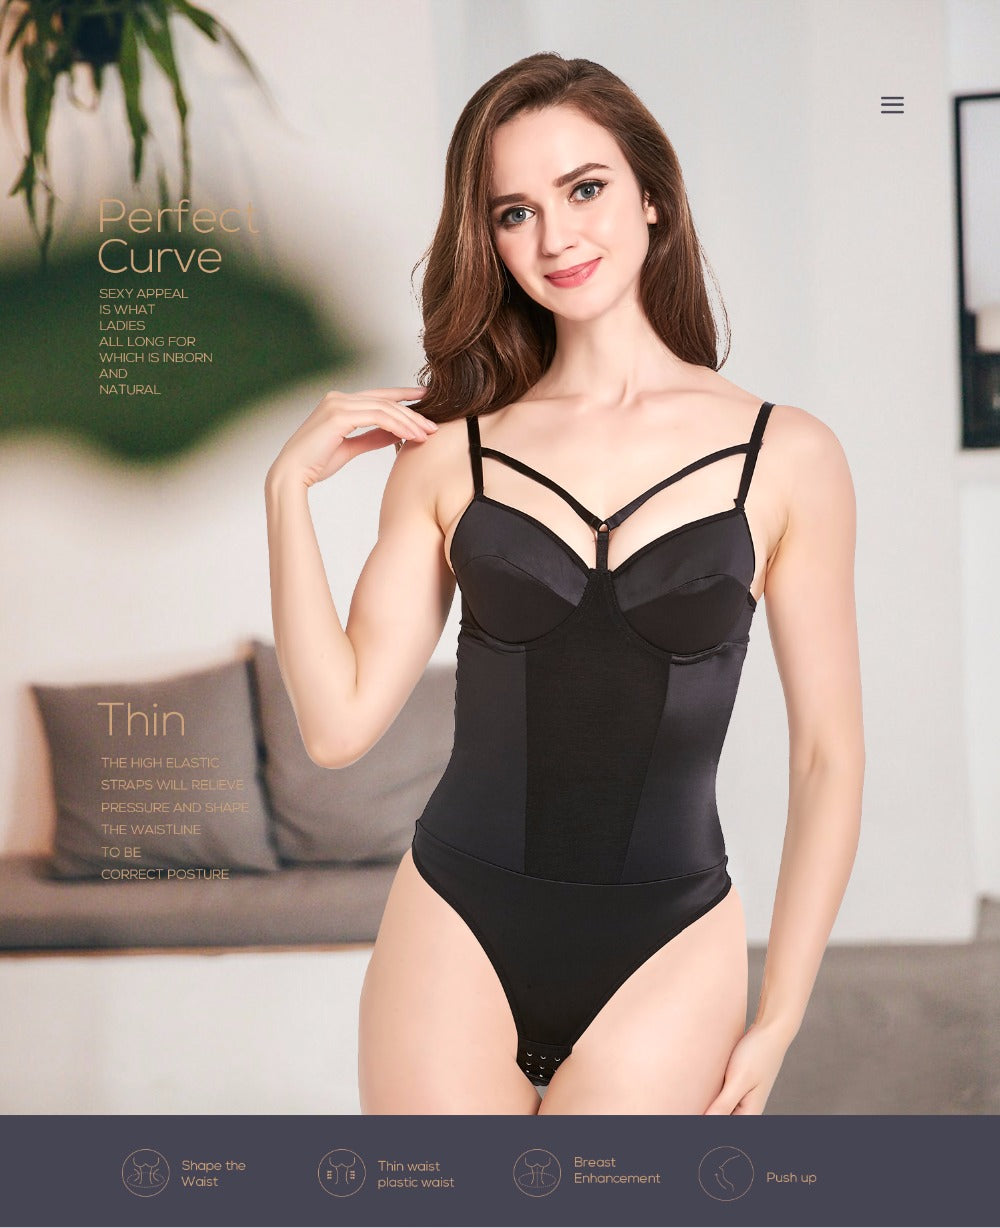 Slimming Bodysuit Body Shaper Waist Trainer Corset Shapewear Lingerie For Women